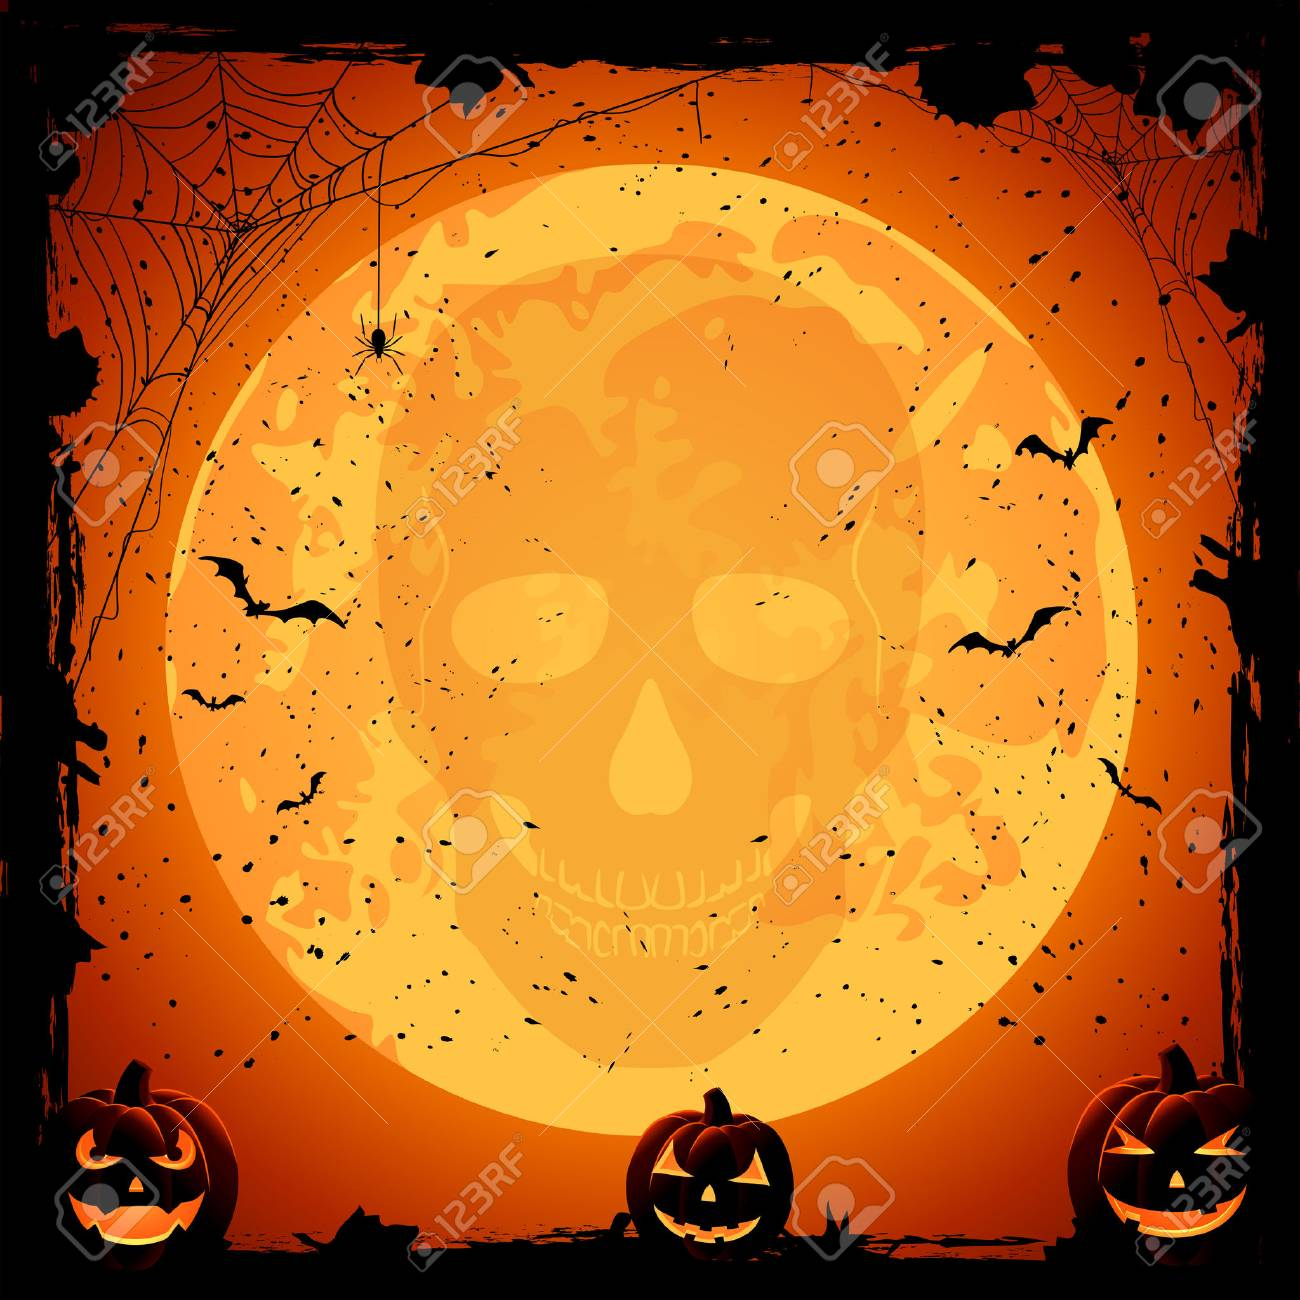 Scary Halloween night background with pumpkins and skull, illustration Stock Vector - 22304389